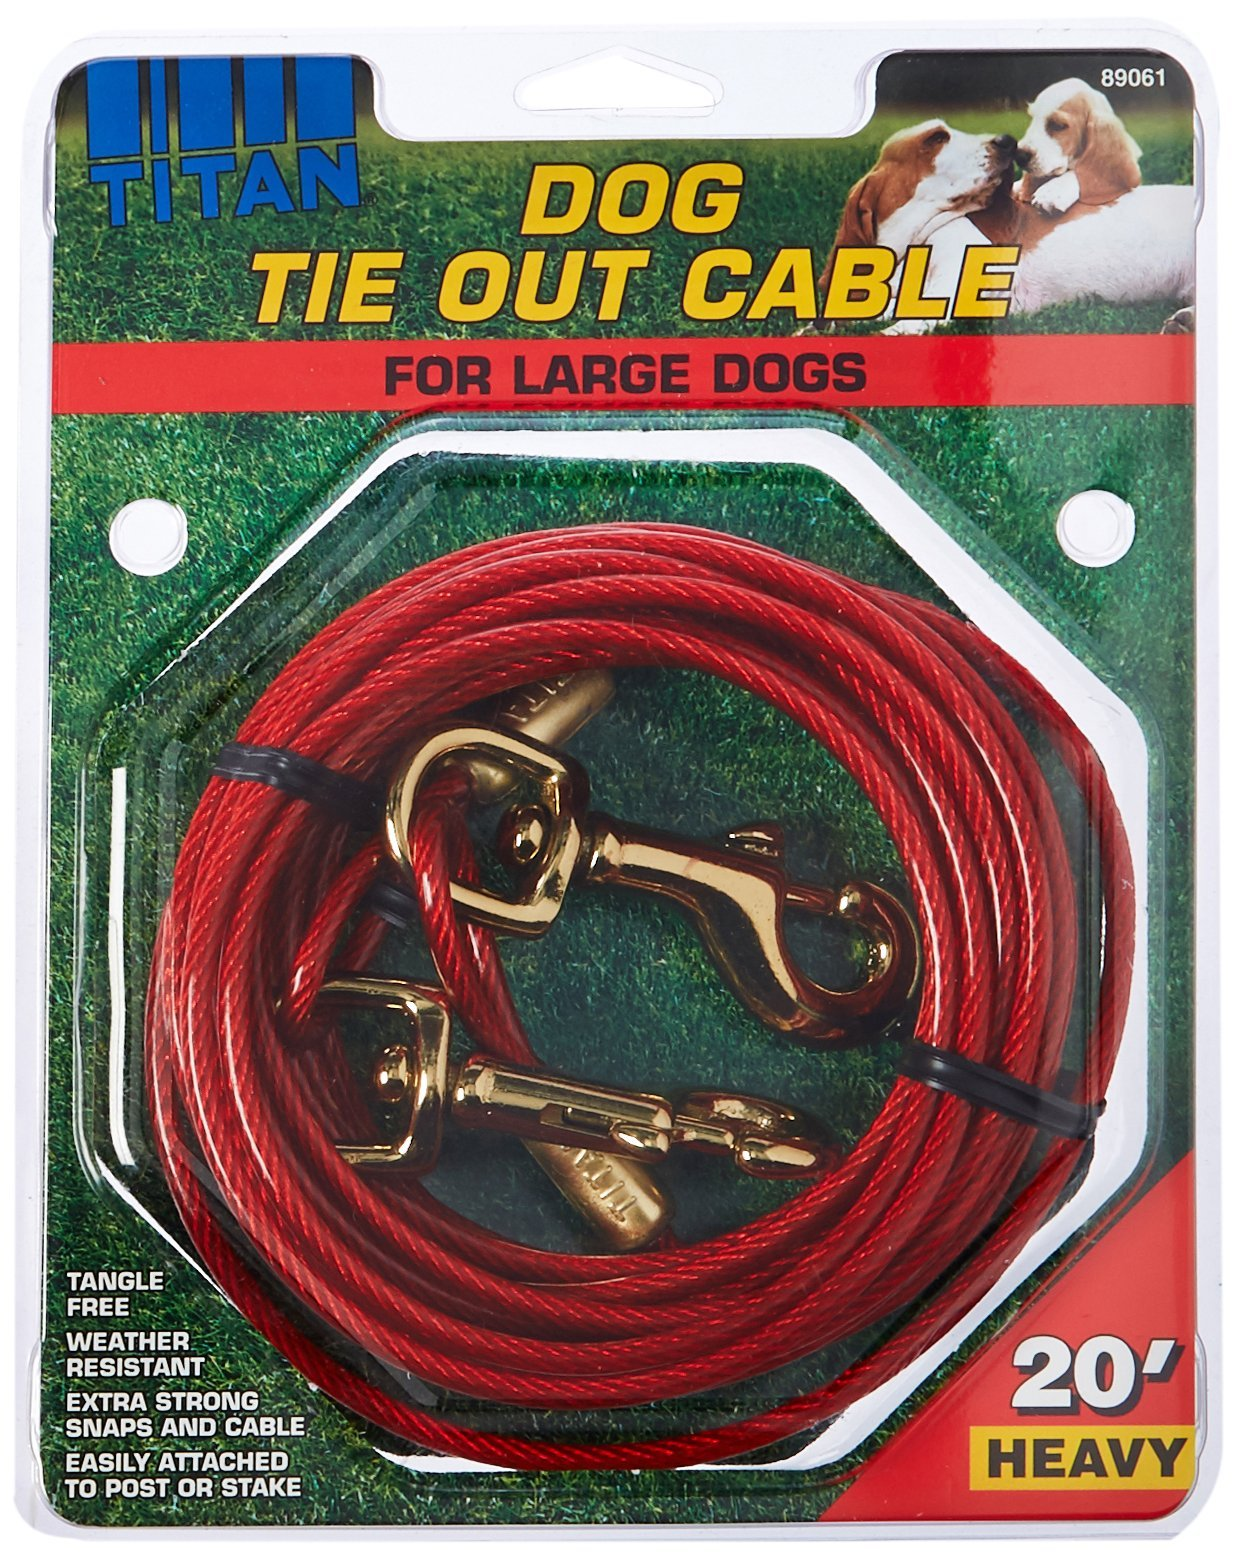 Titan Heavy Cable Dog Tie Out 20 Feet by Titan